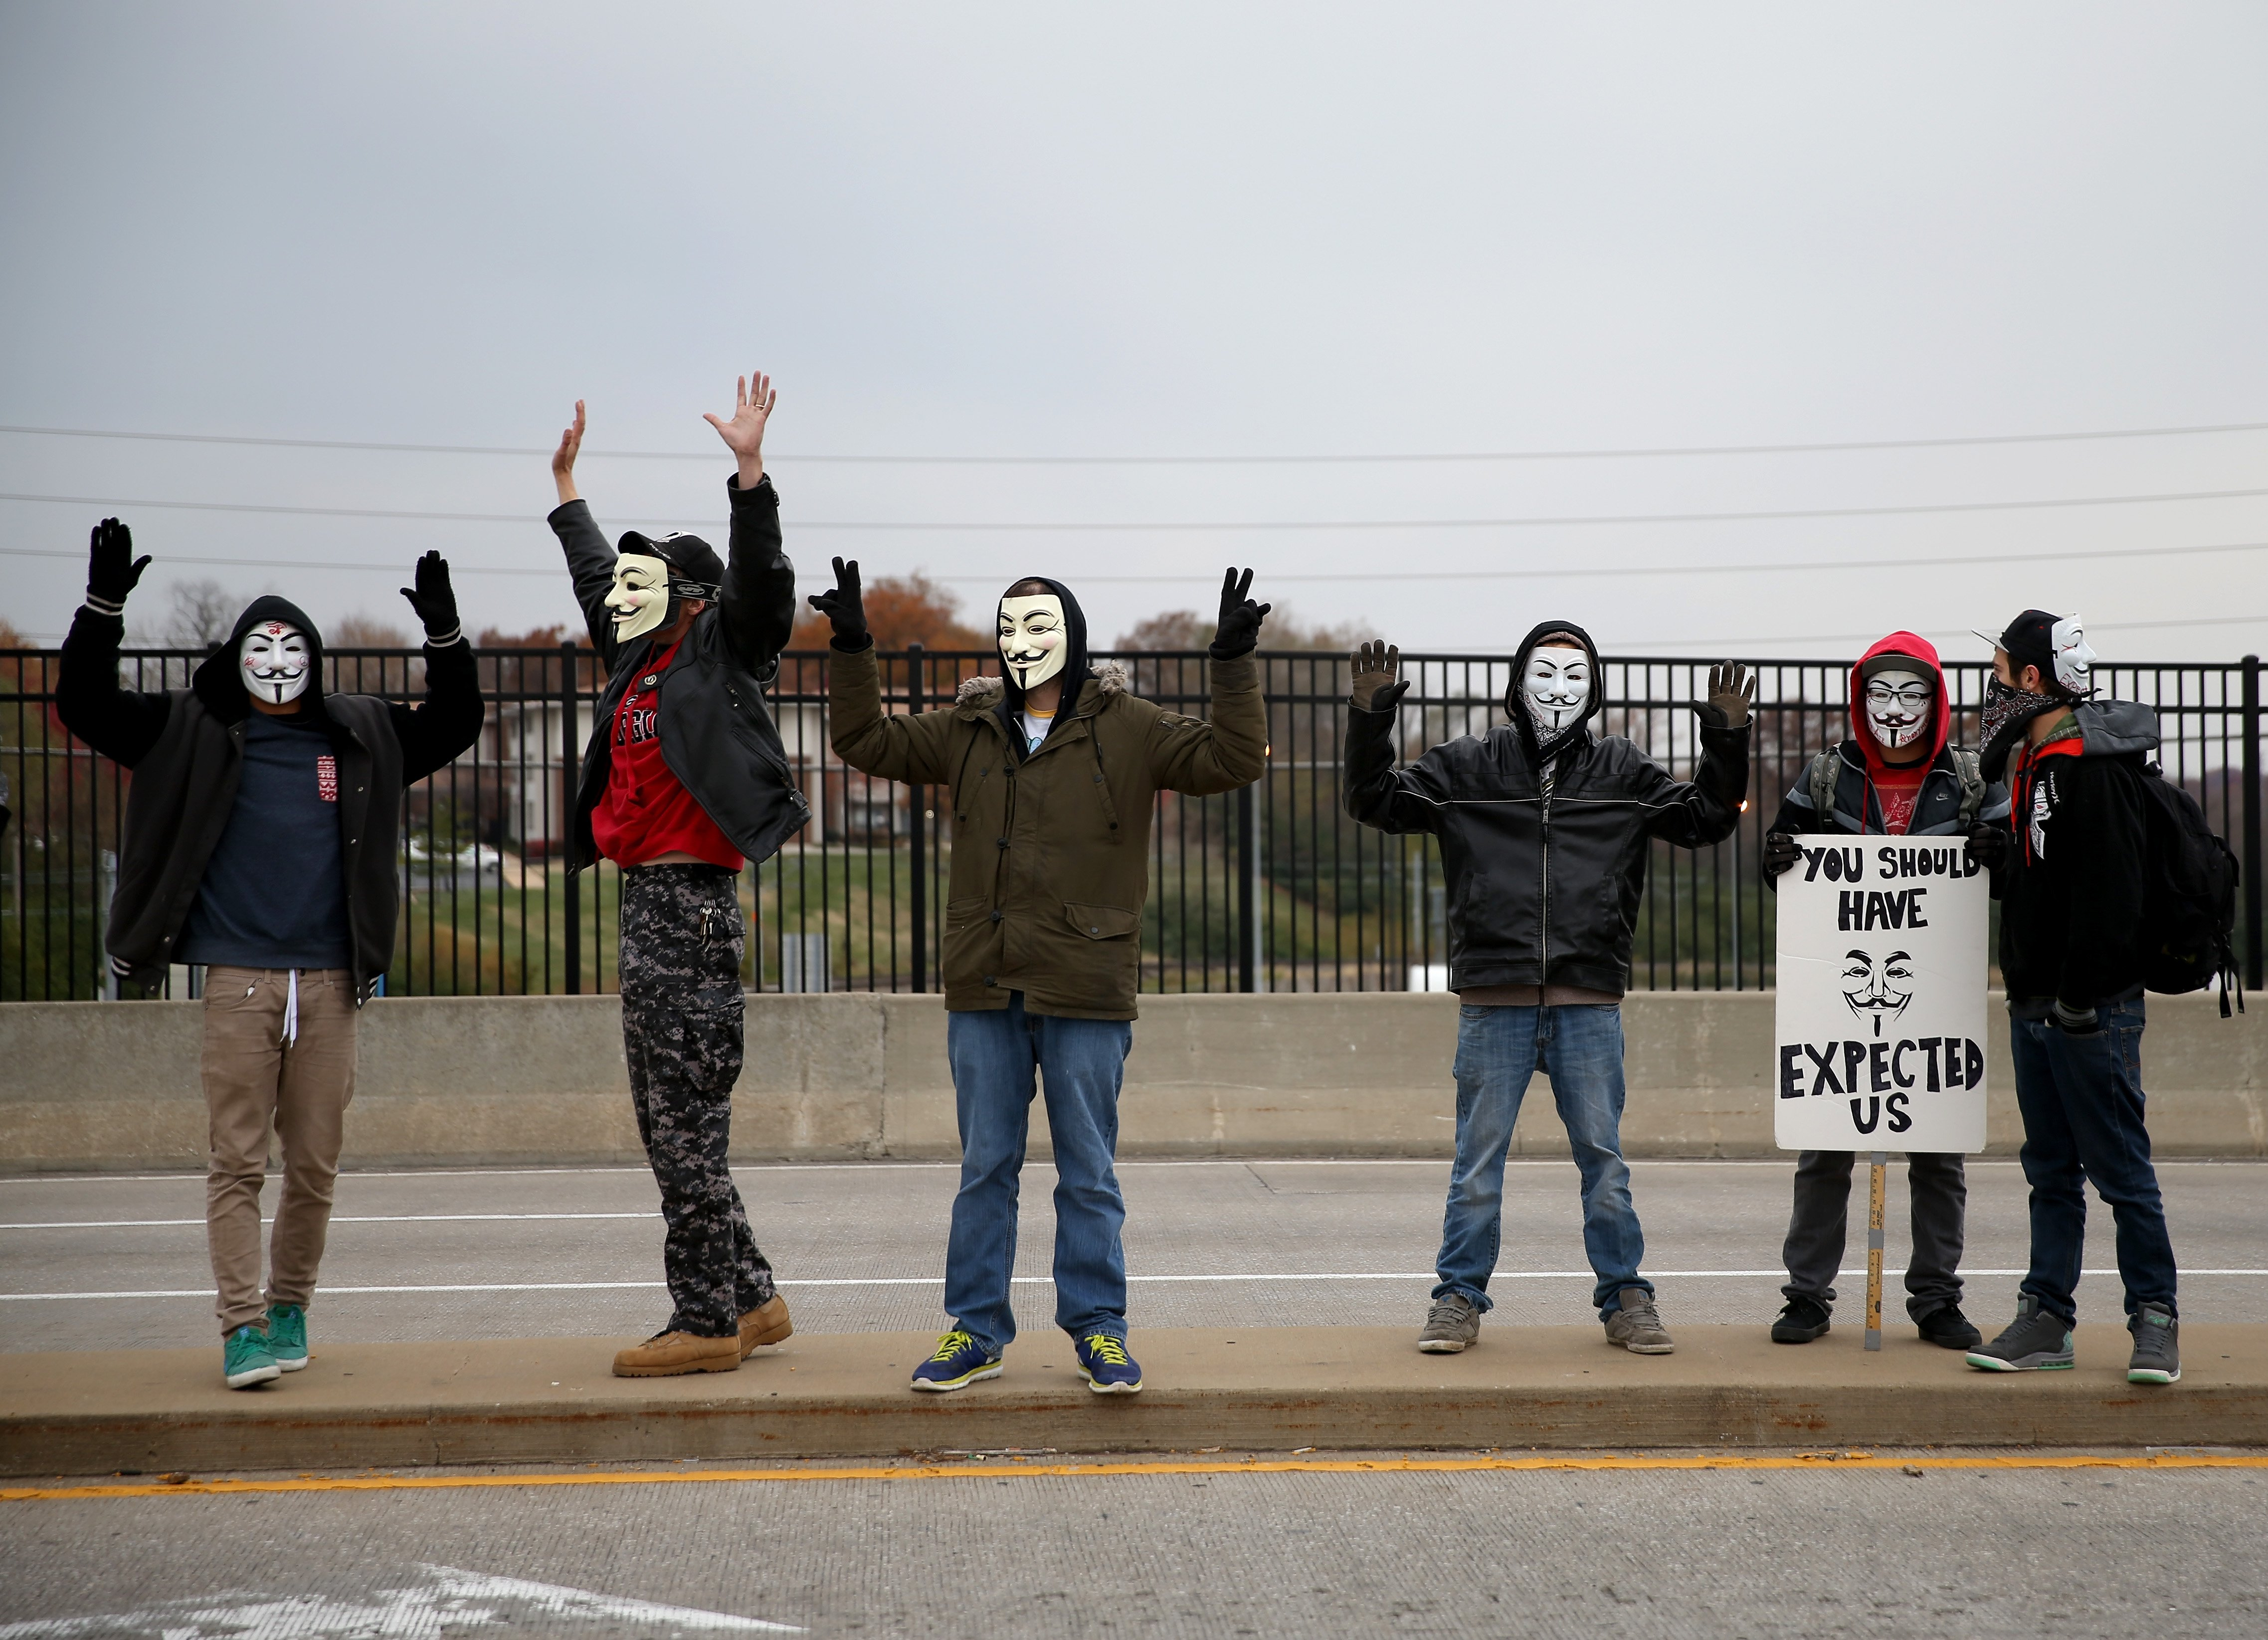 Demonstrators yell  Hands Up, Don't Shoot  alongside a highway overpass to voice their opinions as the area awaits a grand jury decision on Nov. 15, 2014 near Ferguson, Missouri.